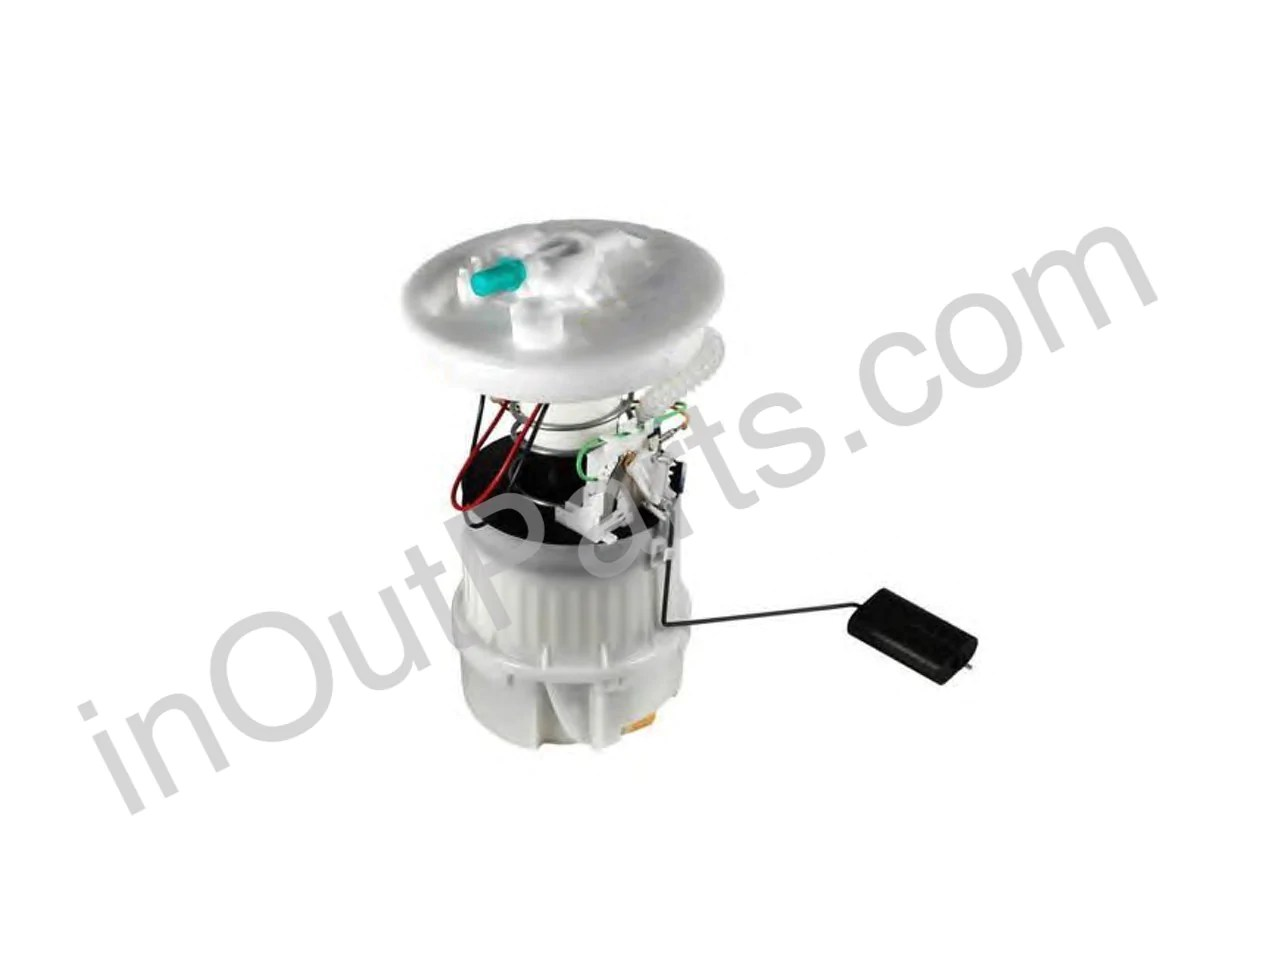 medium resolution of fuel filter fits ford focus 2005 2006 2007 2008 2009 2010 2011 c max 2003 10 with pump